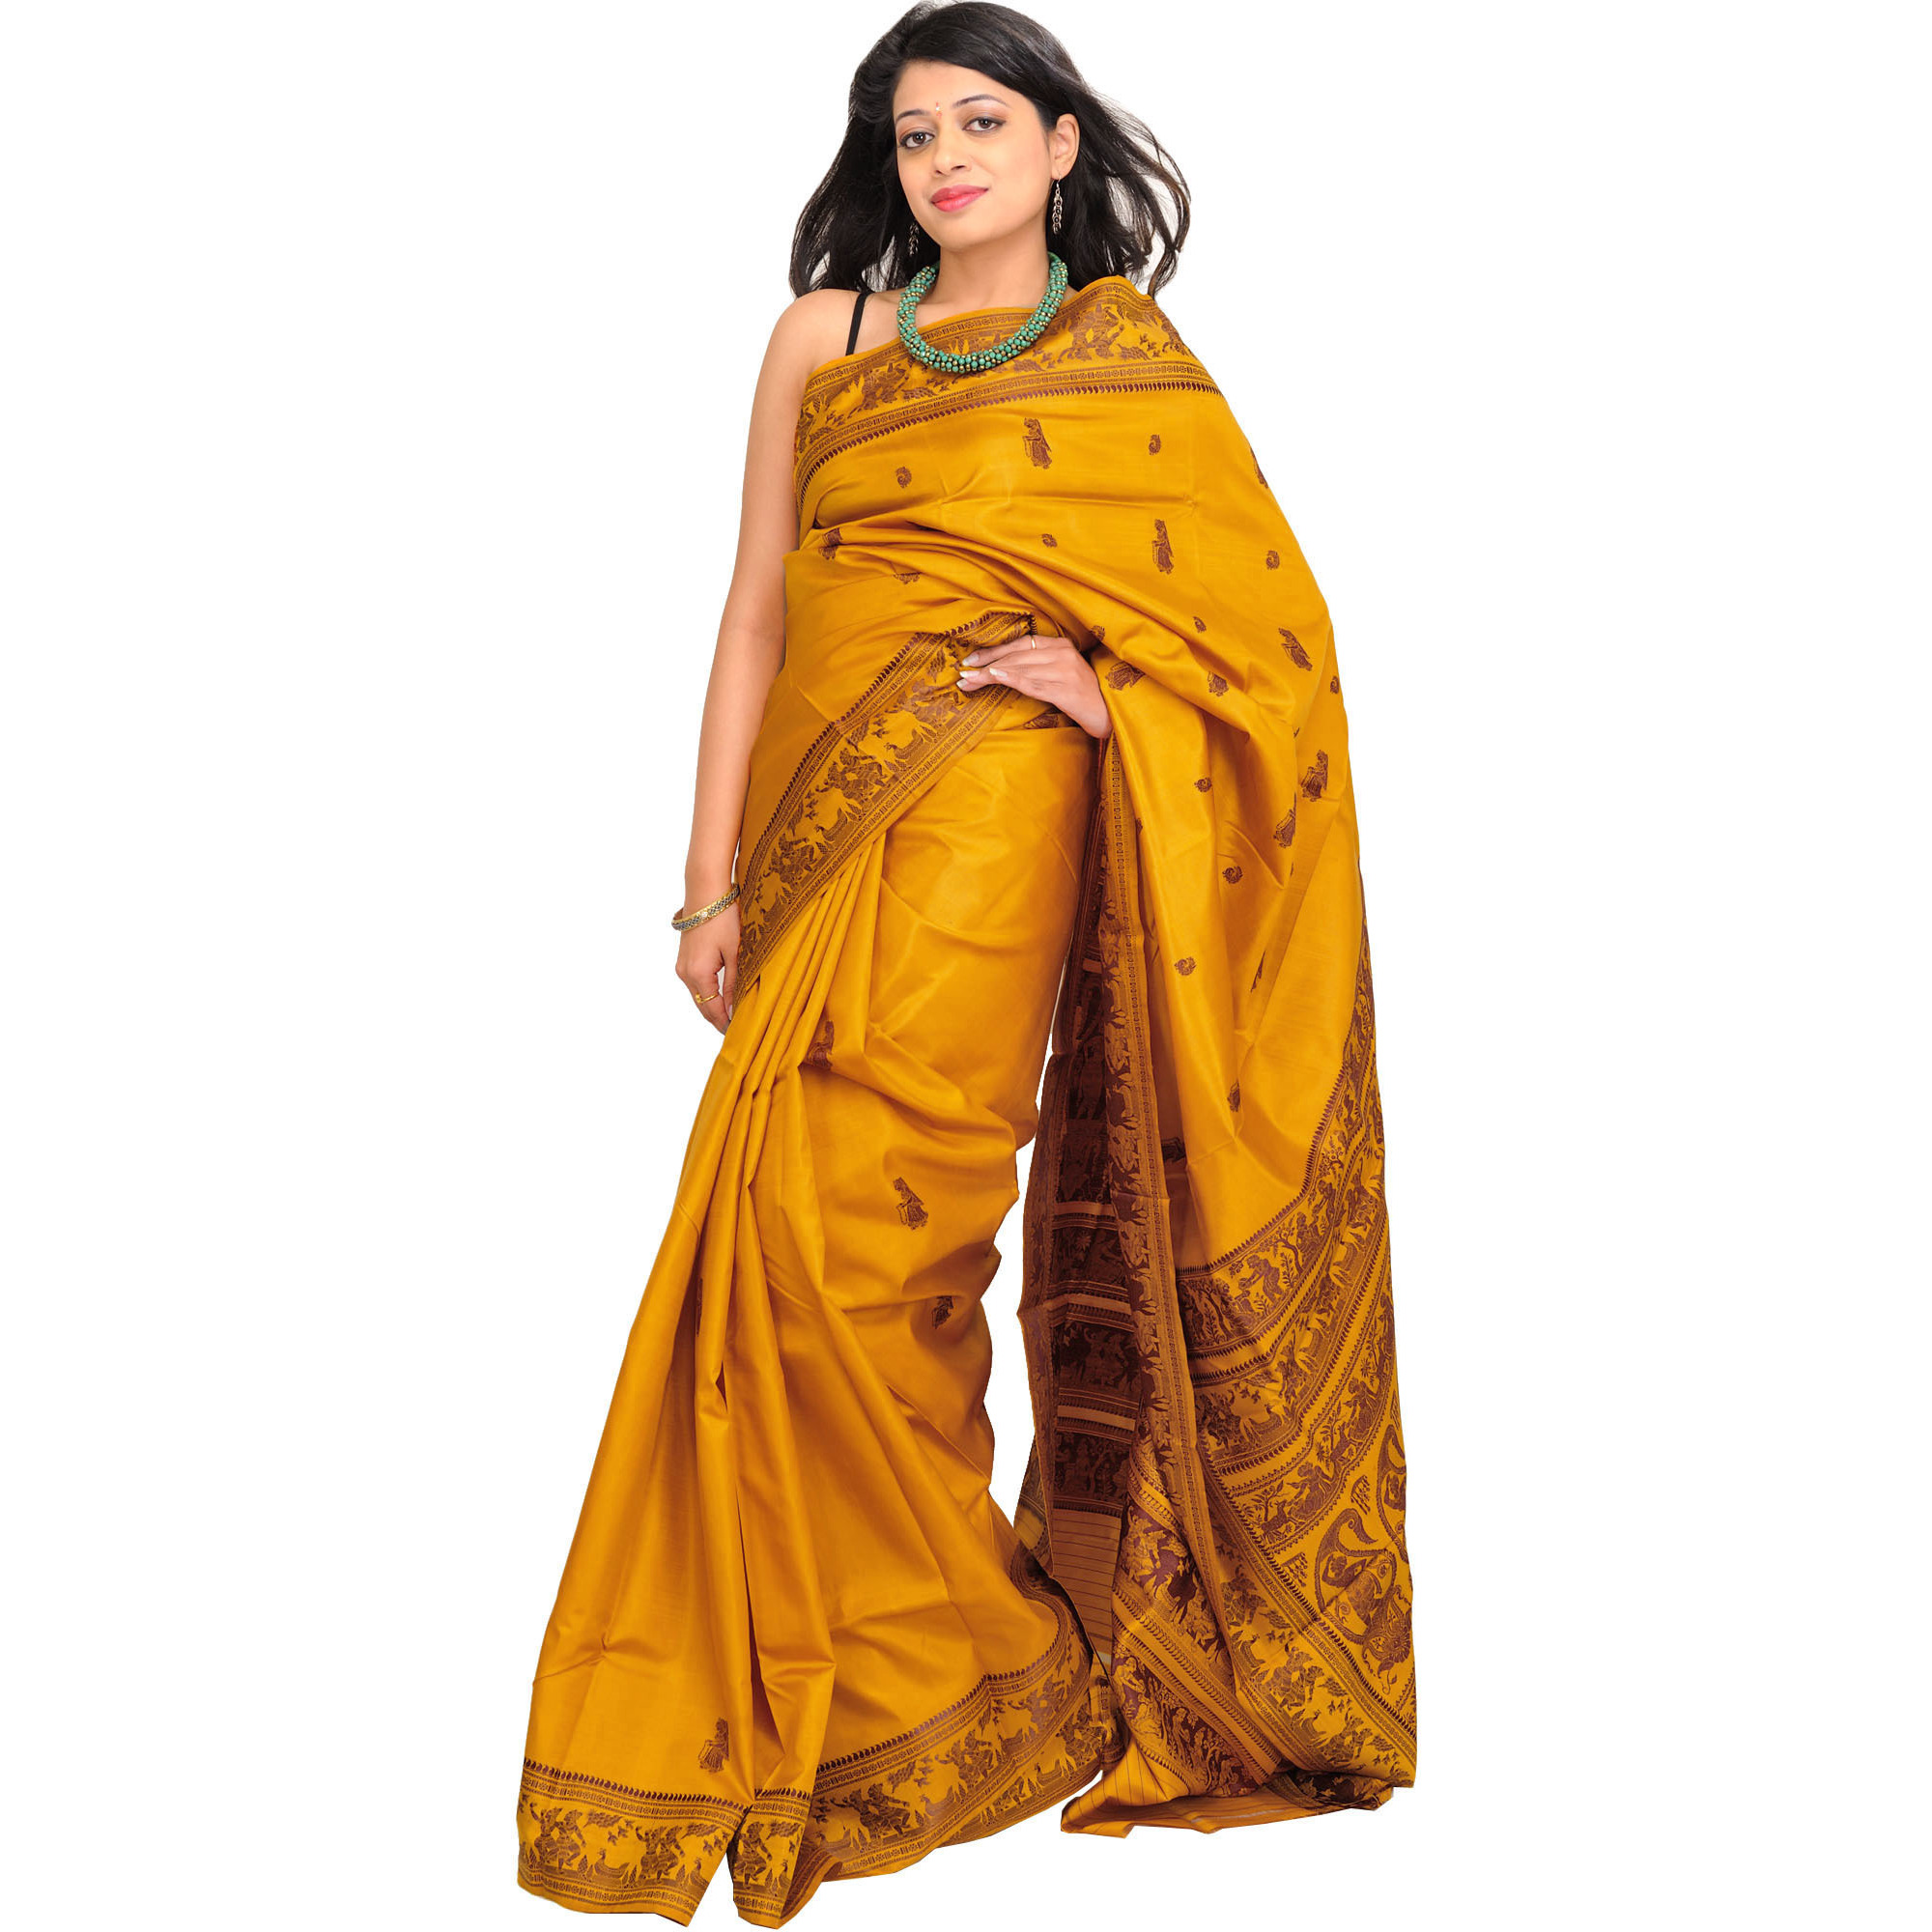 Honey-Gold Baluchari Sari from Kolkata Depicting Hindu Mythological Episodes